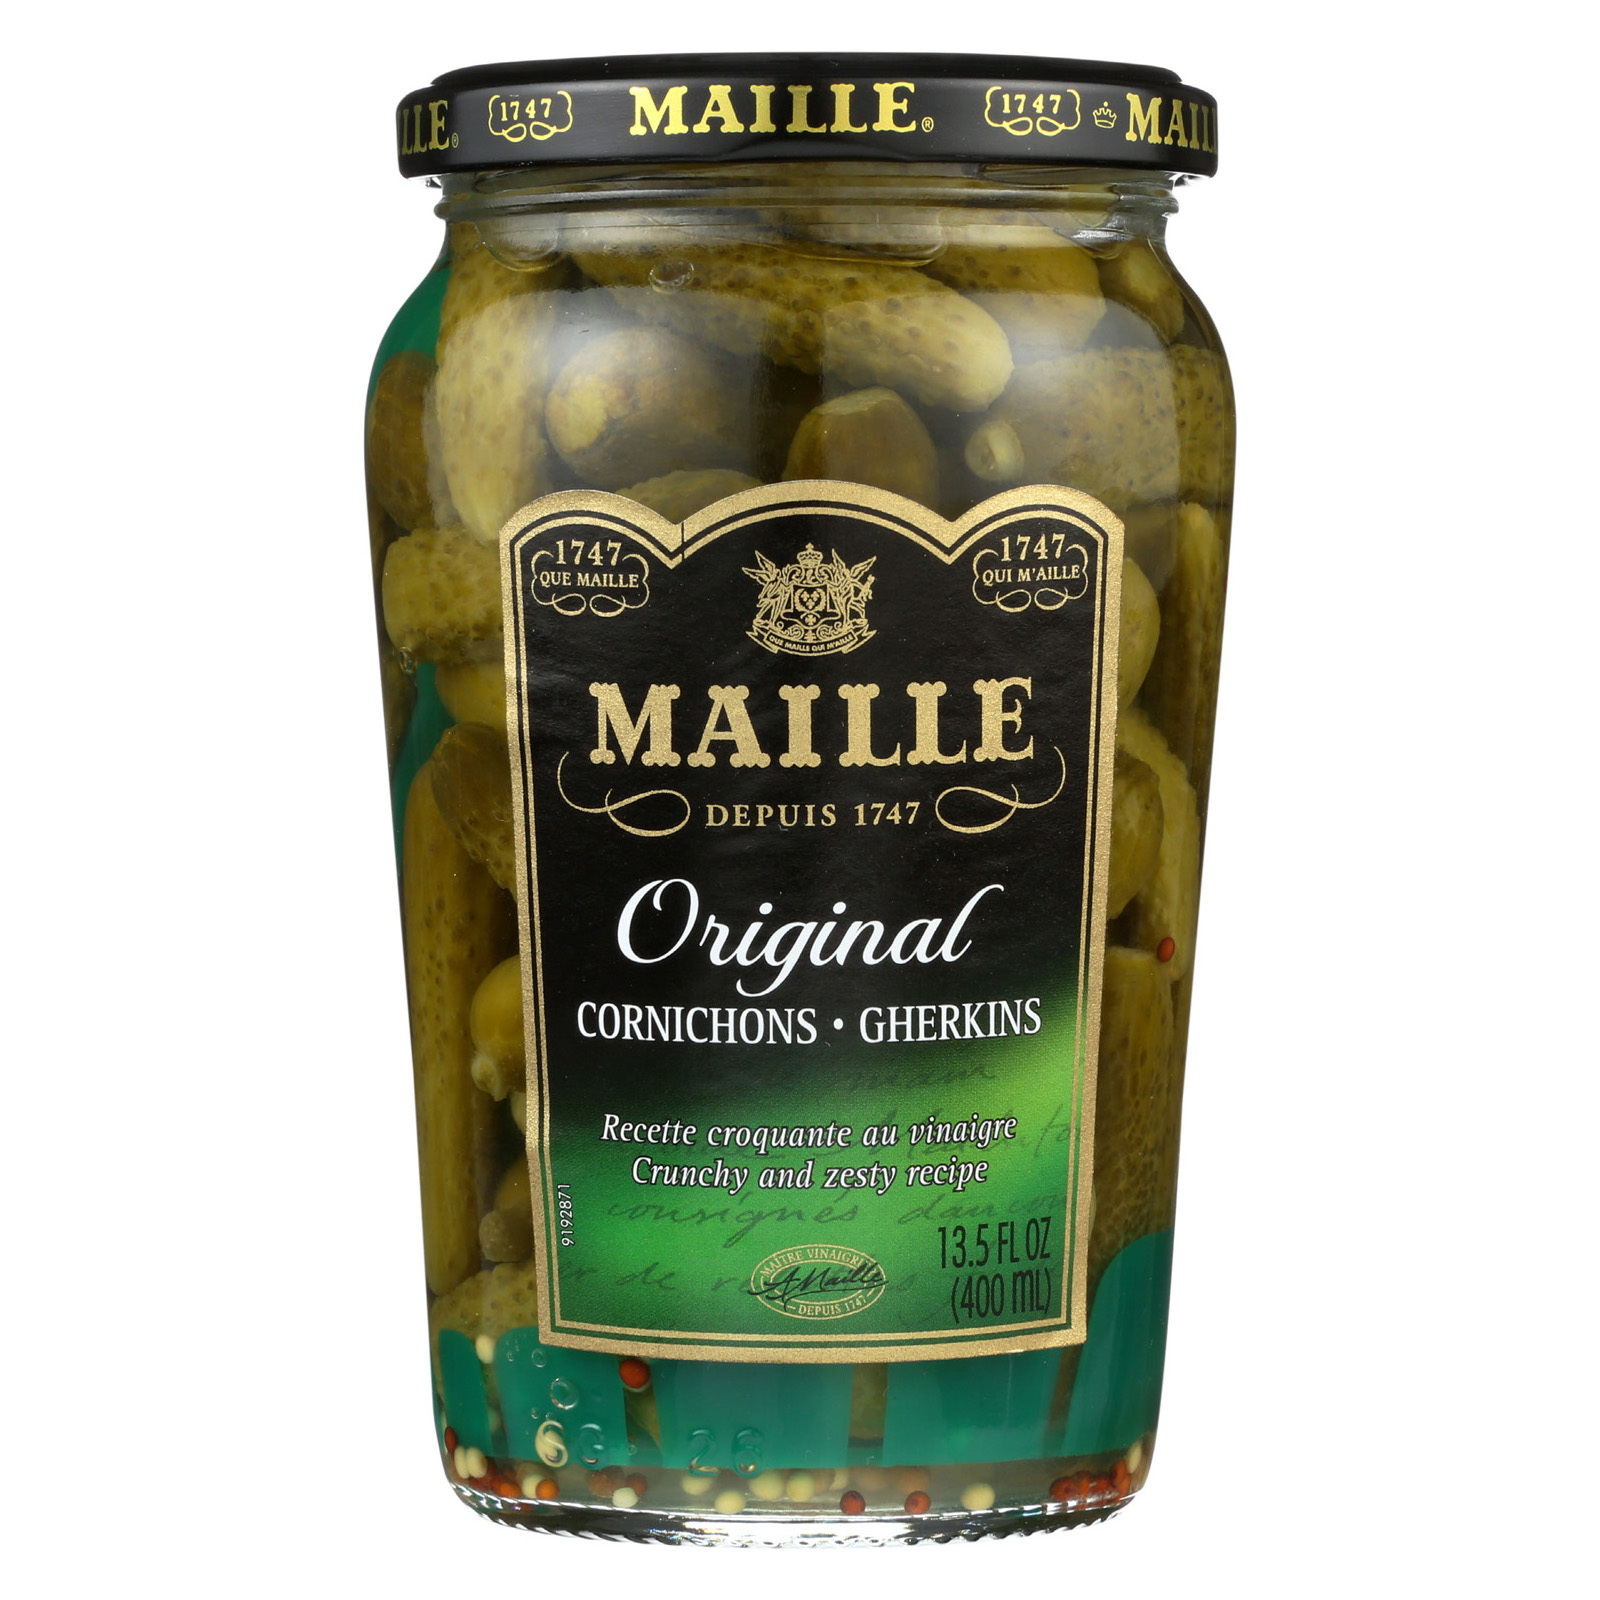 Maille Cornichons - Case of 12 - 13.5 fl oz